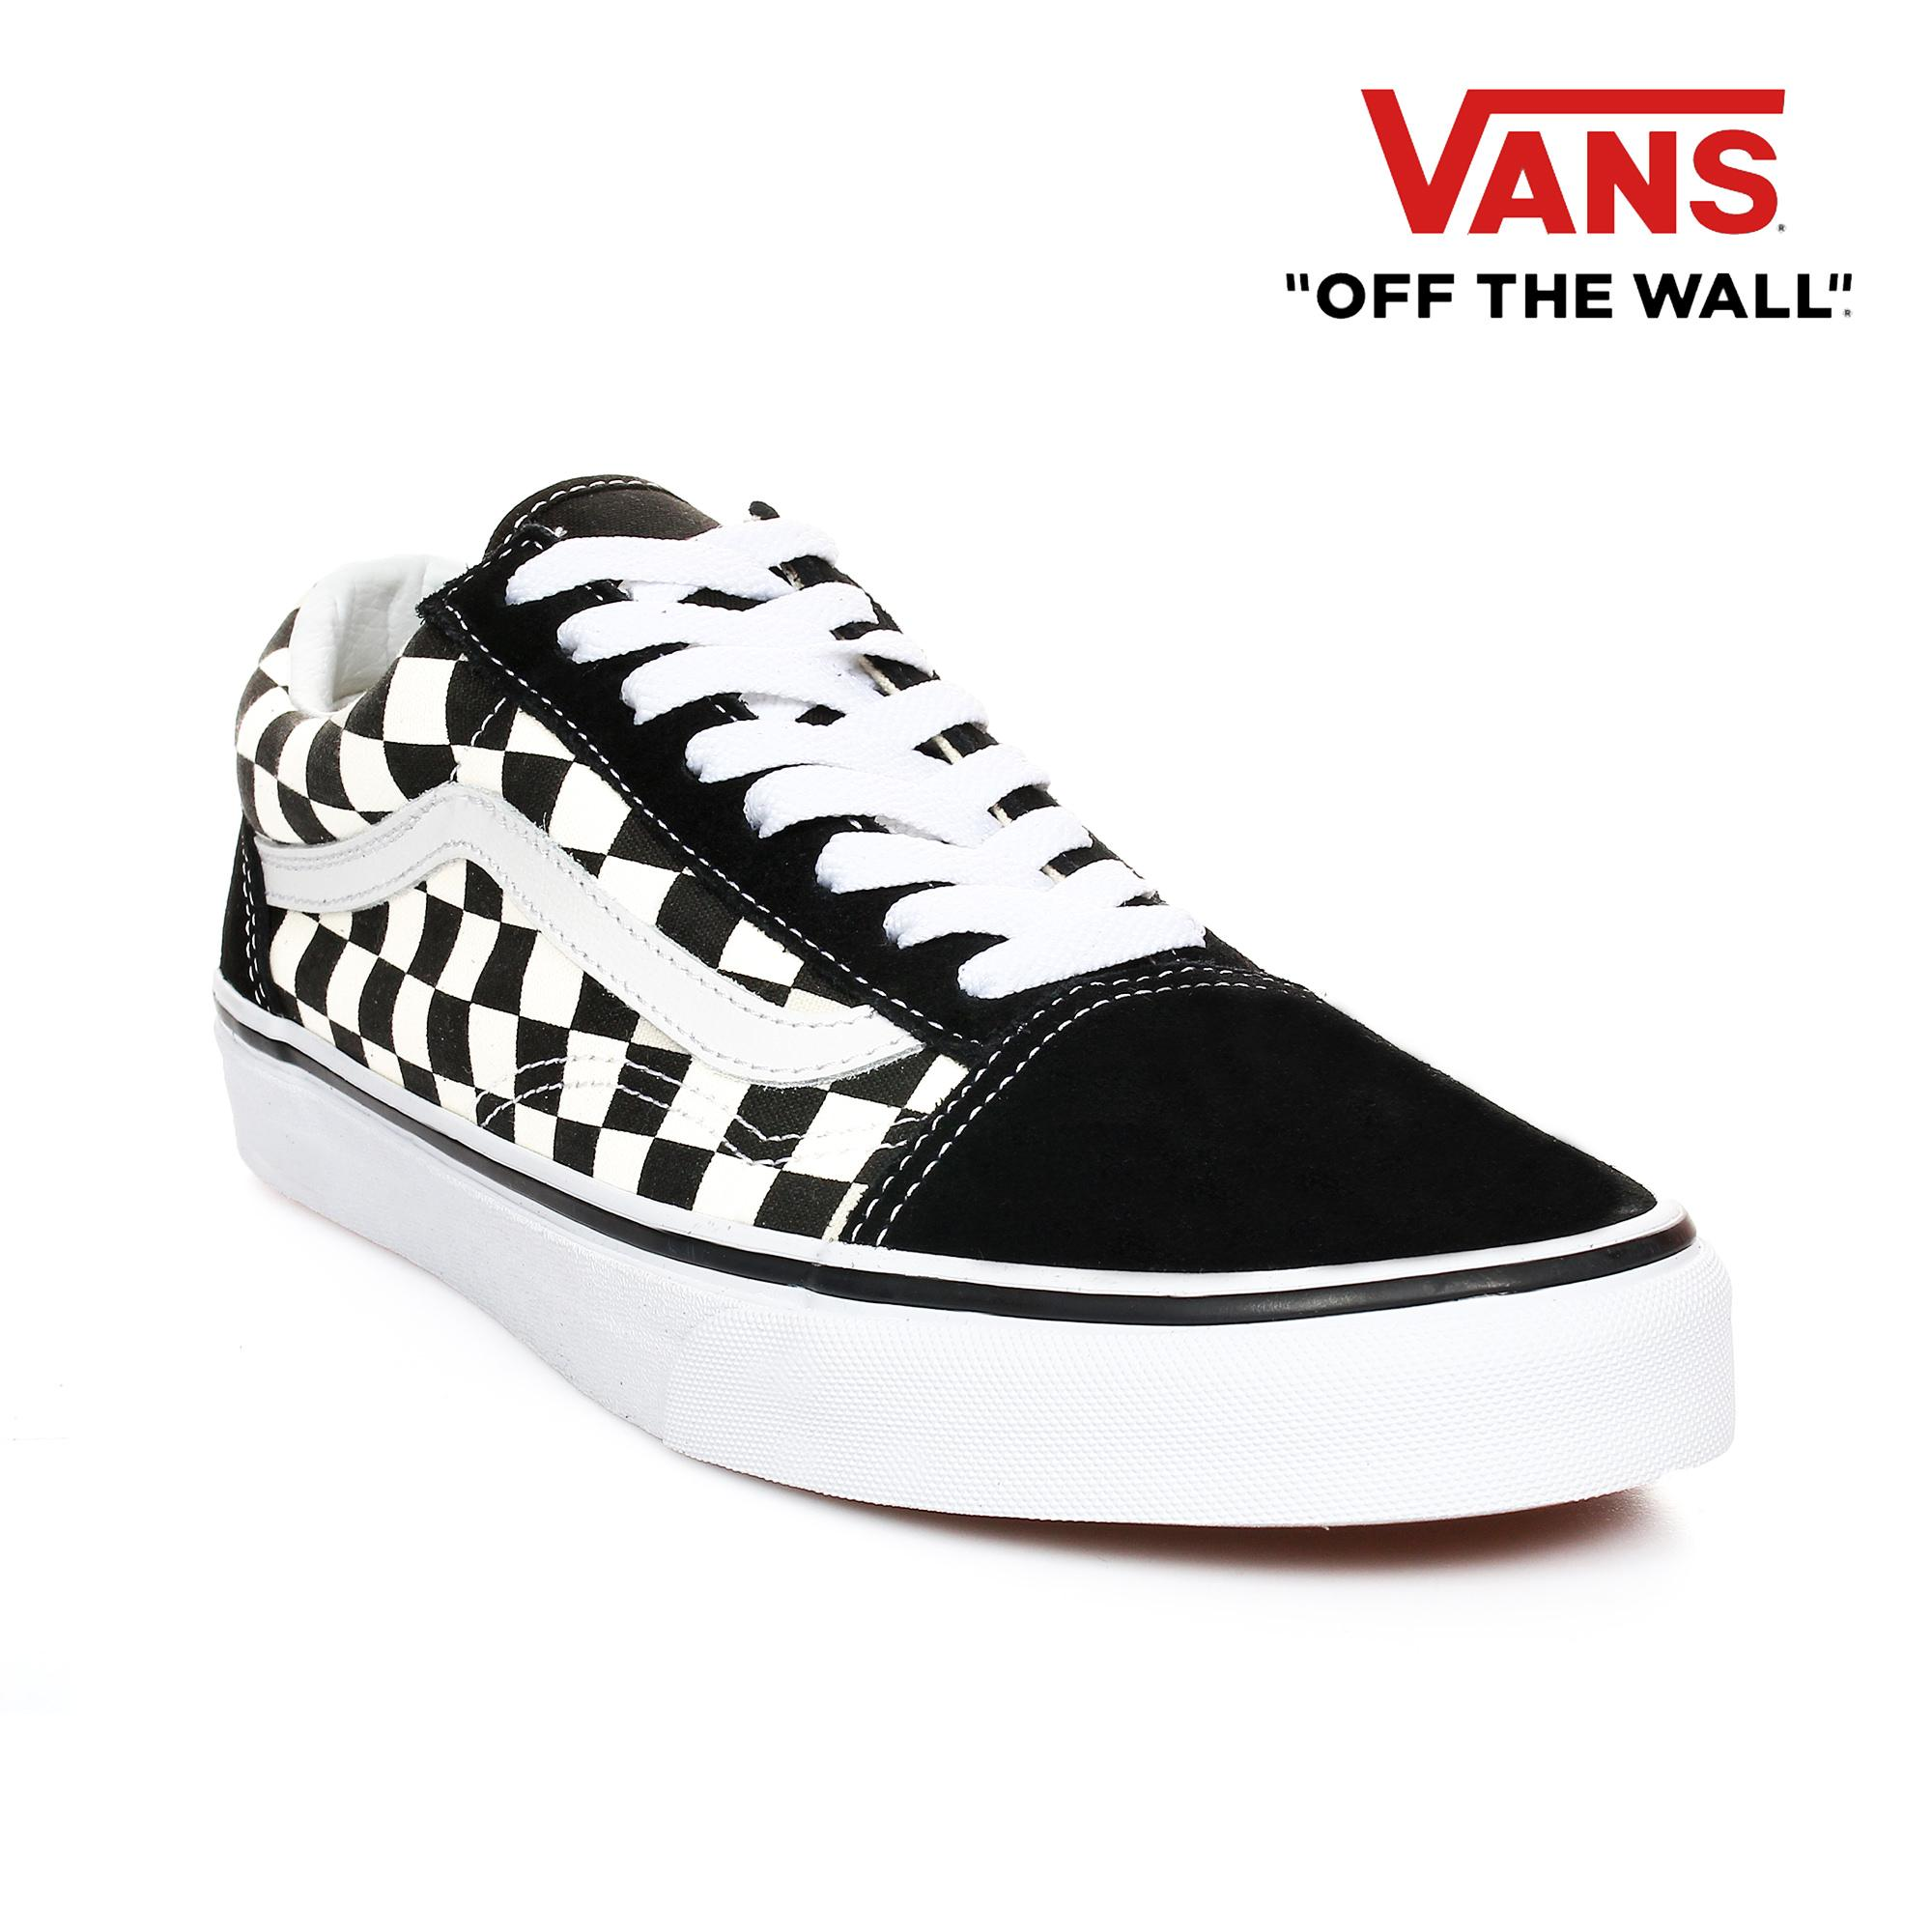 e1c80fad5b02 Vans Shoes for Men Philippines - Vans Men s Shoes for sale - prices ...